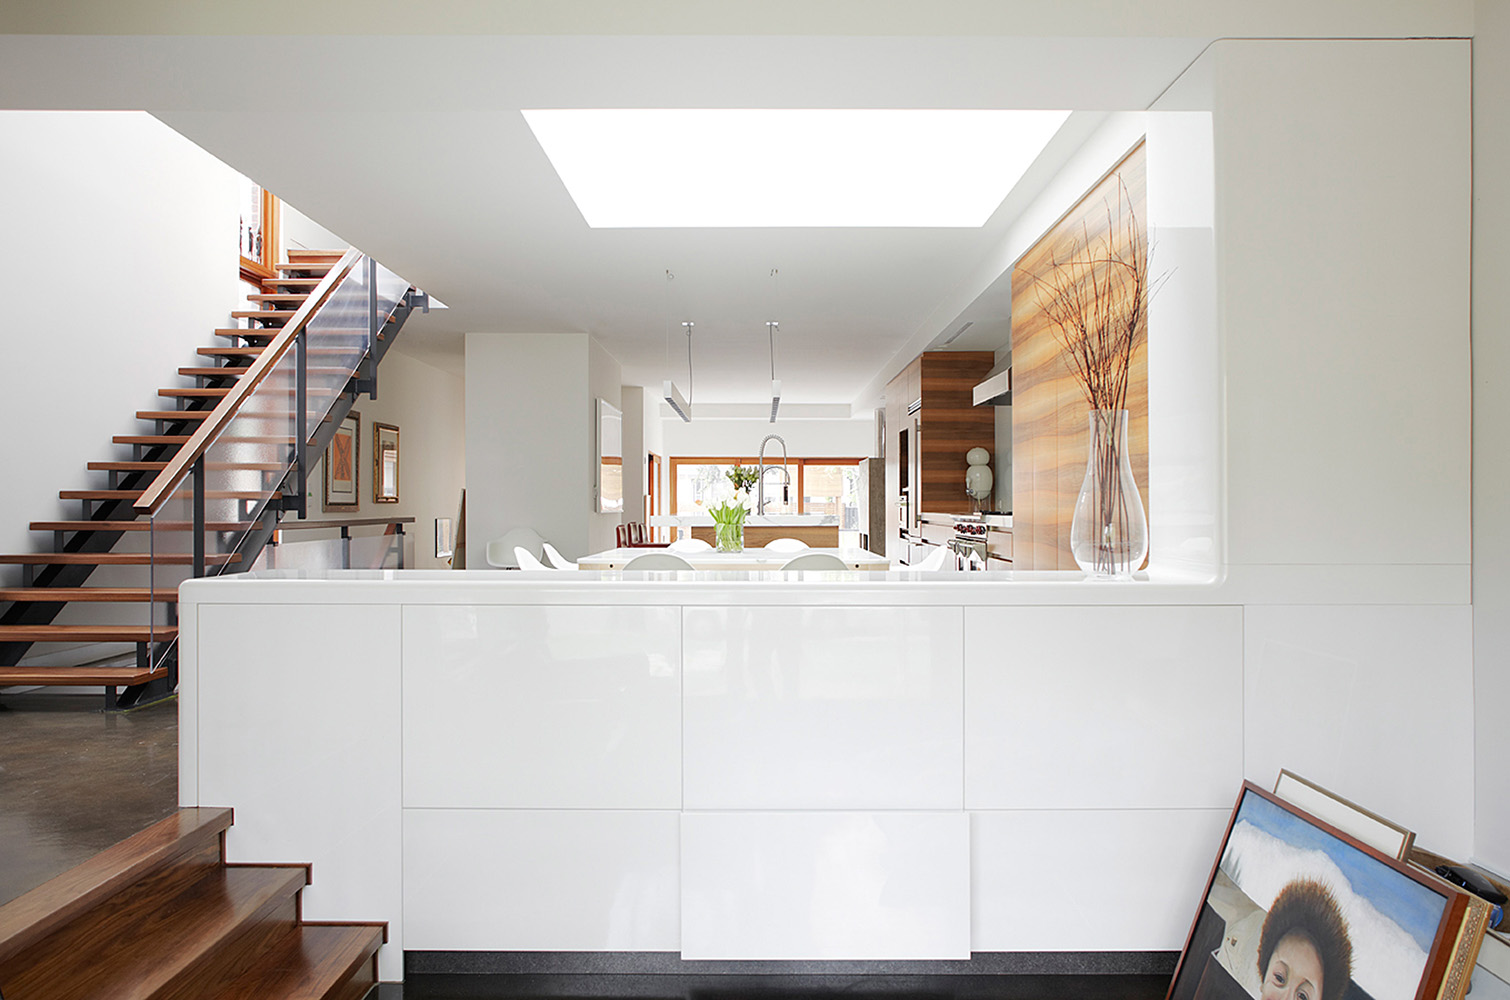 Toronto contemporary home with skylights providing natural light.